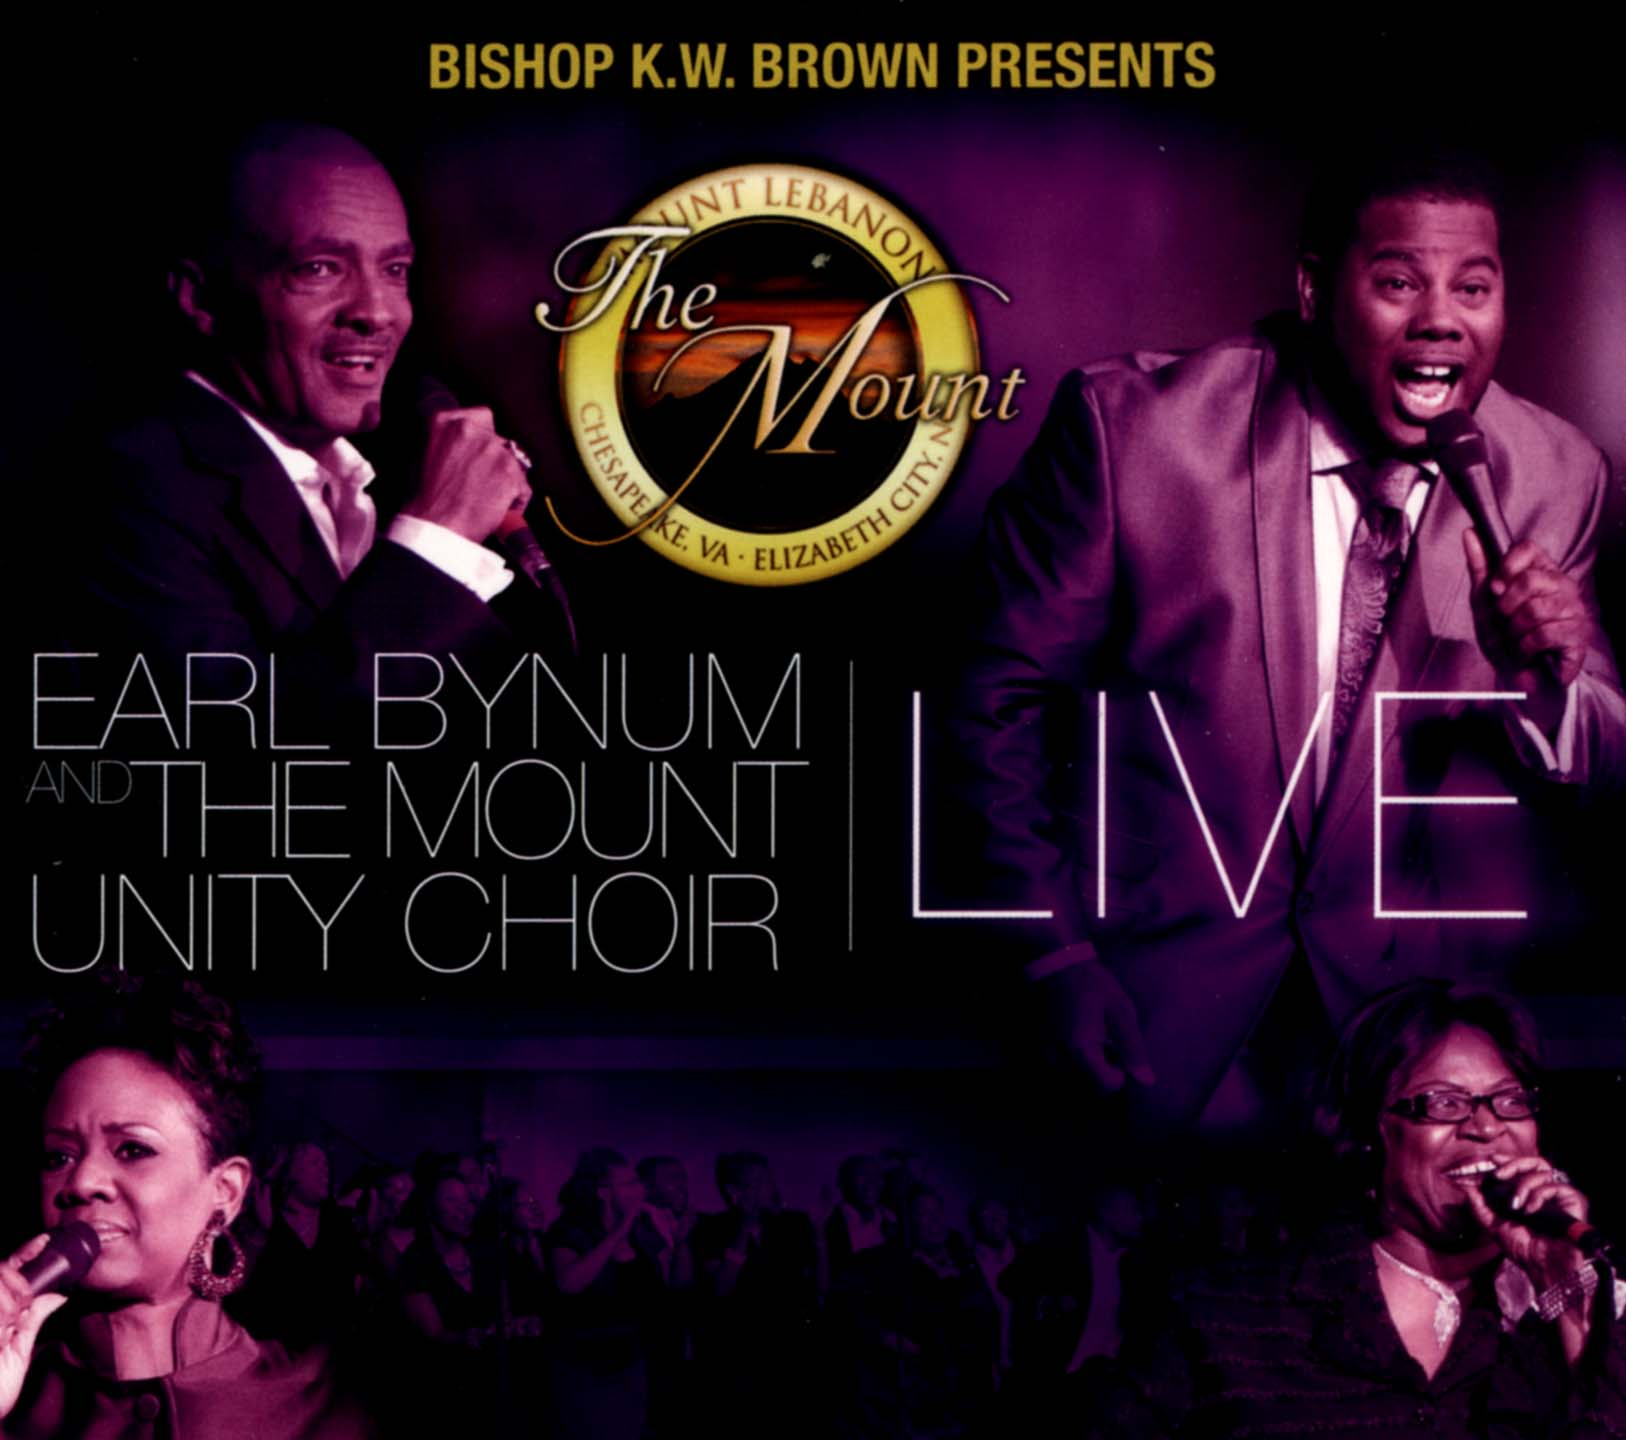 Earl Bynum and the Mount Unity Choir: Live